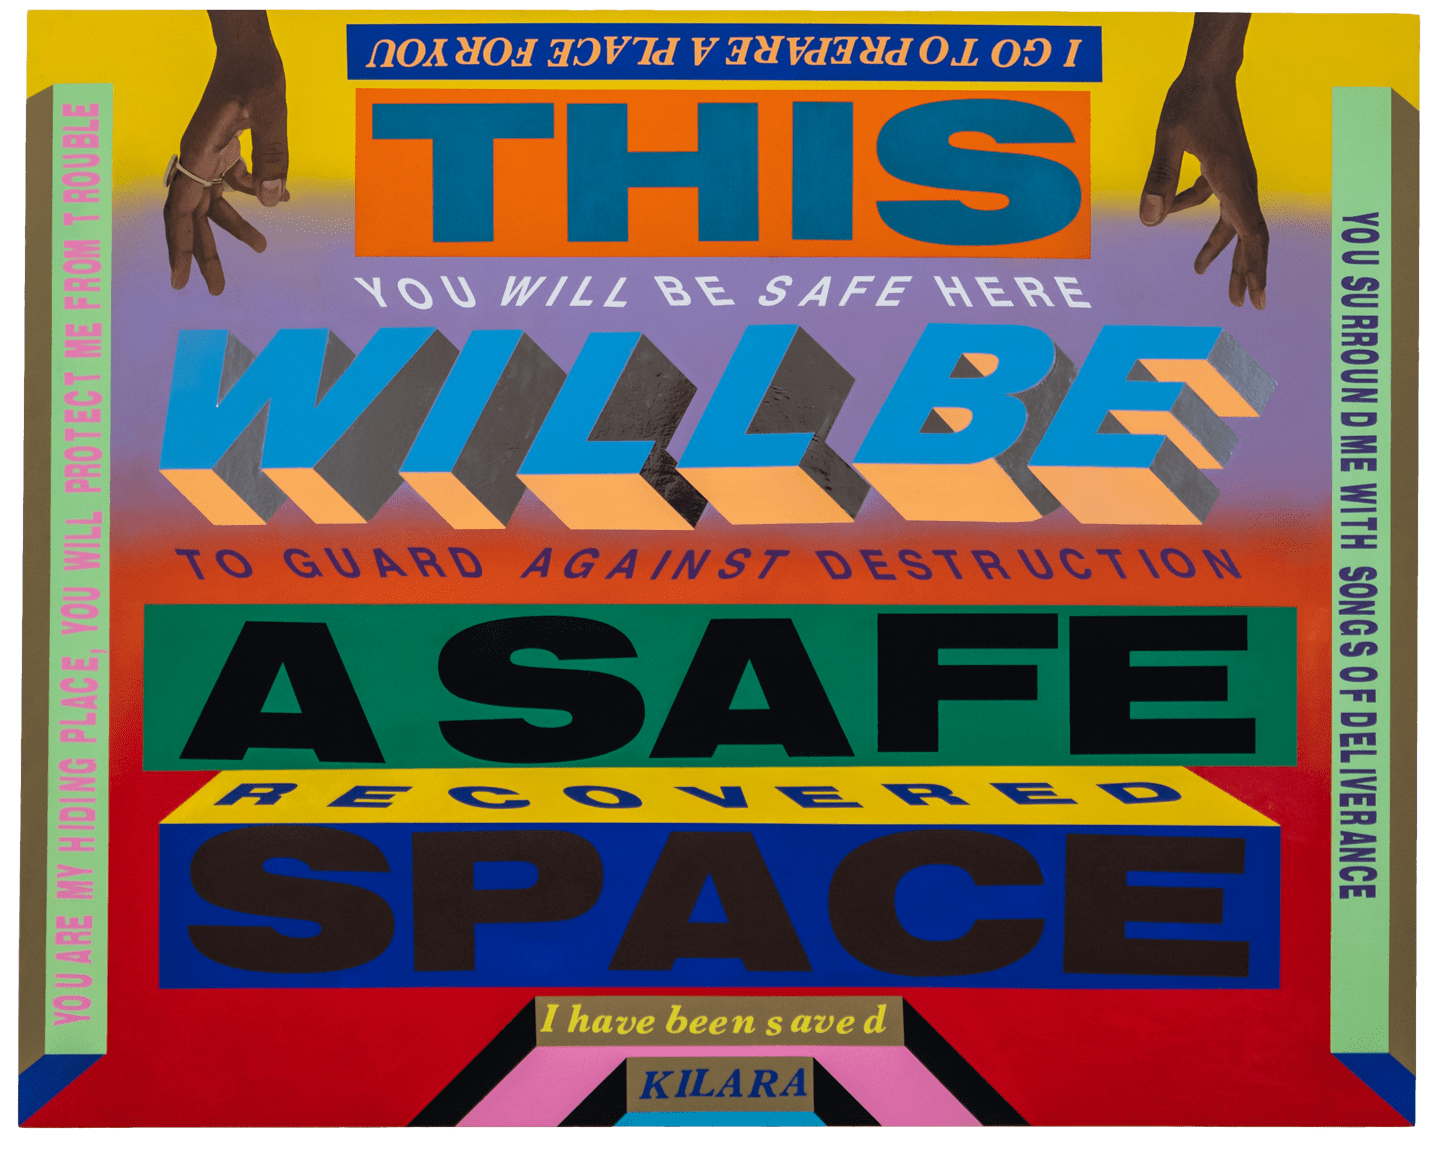 This Will Be A Safe Space, 2020